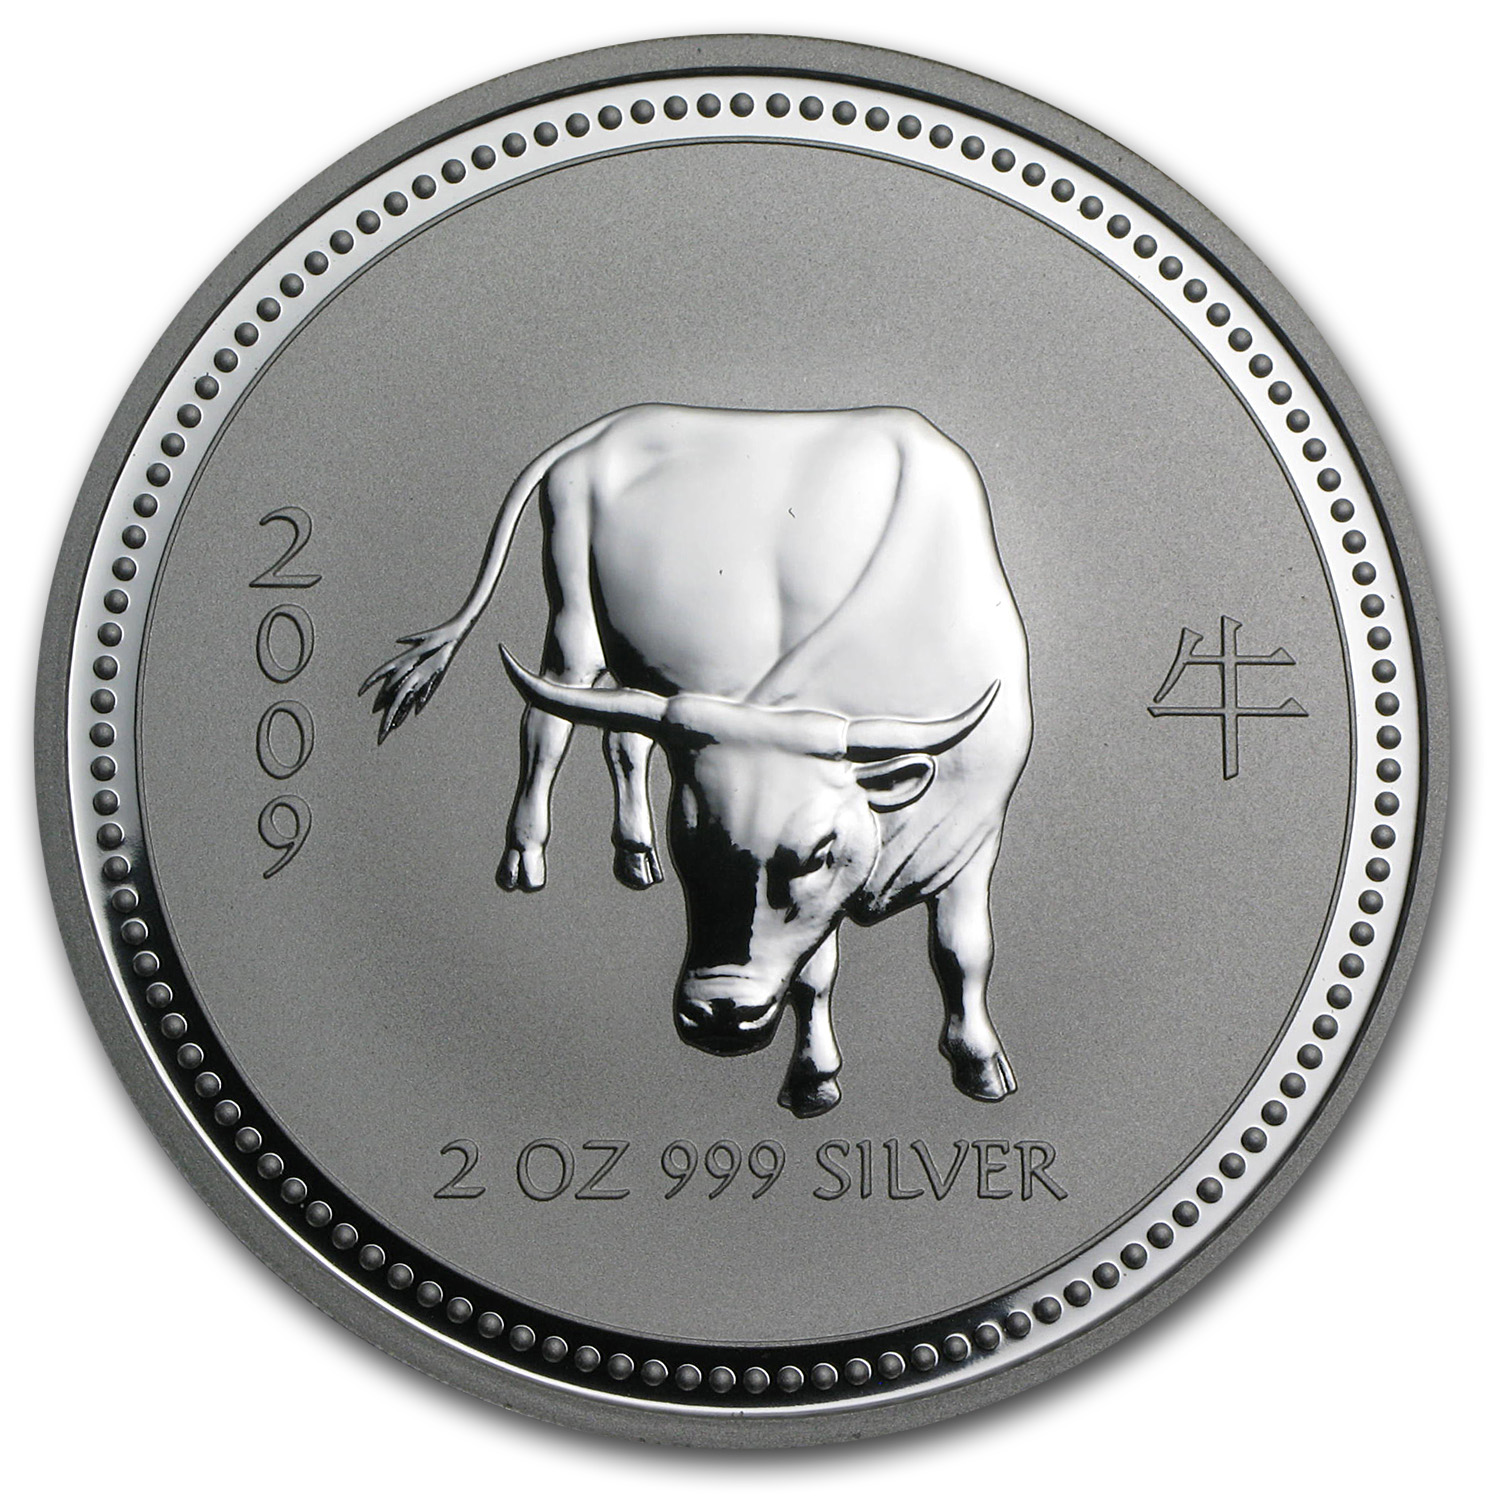 2009 2 oz Silver Australian Year of the Ox BU (Series I)